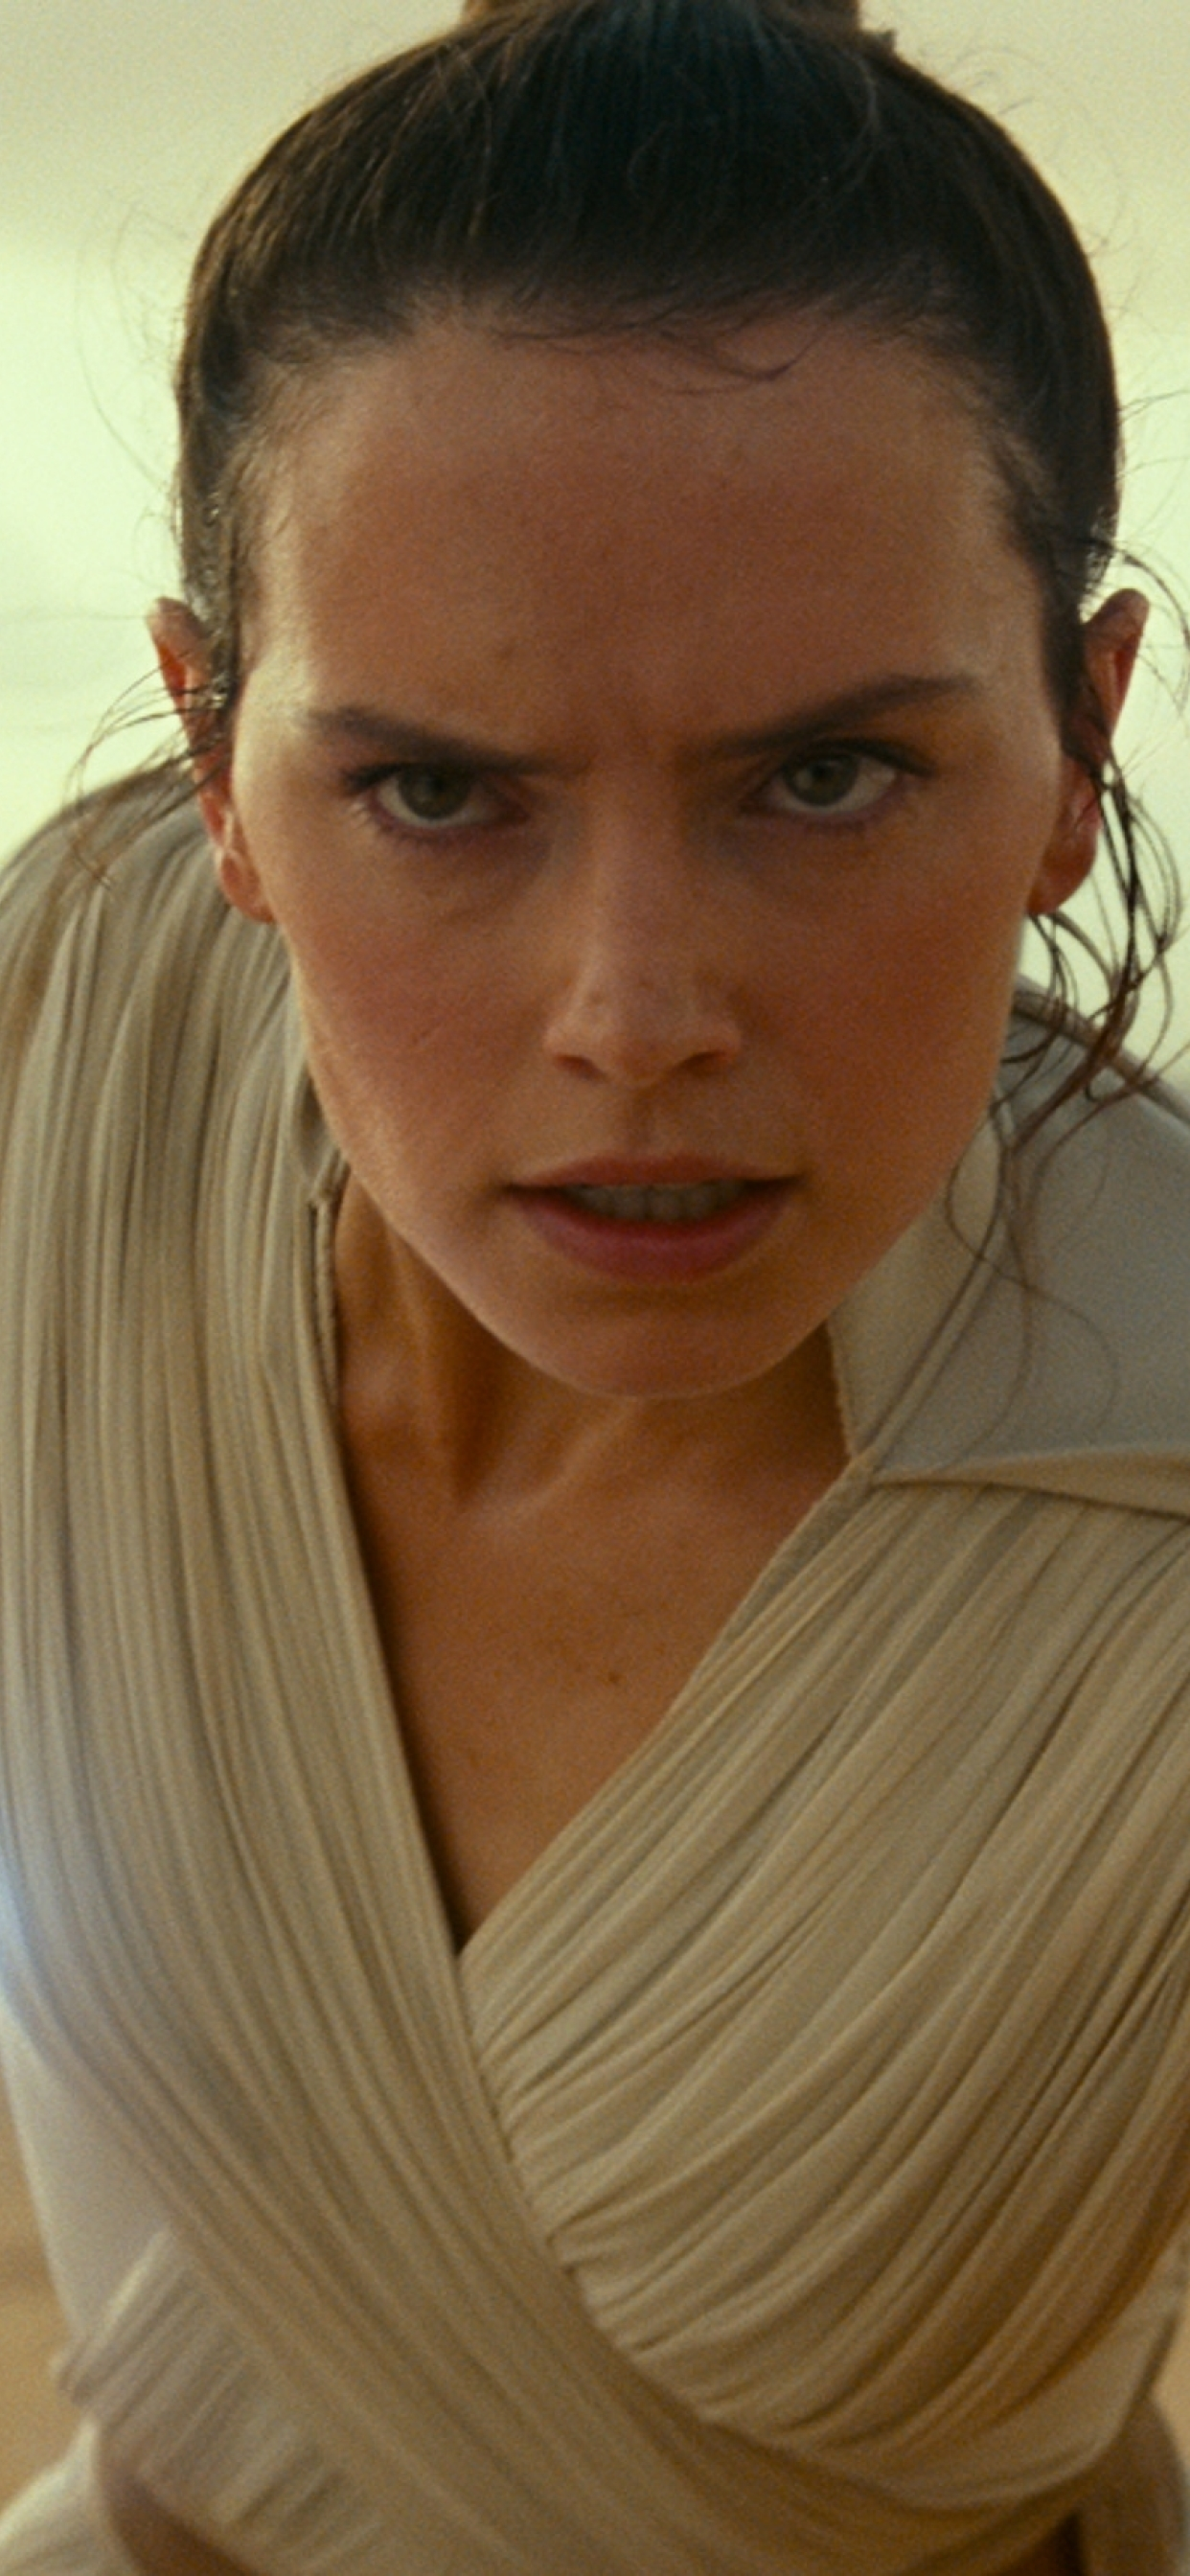 1242x2688 Star Wars Episode Ix Daisy Ridley Iphone Xs Max